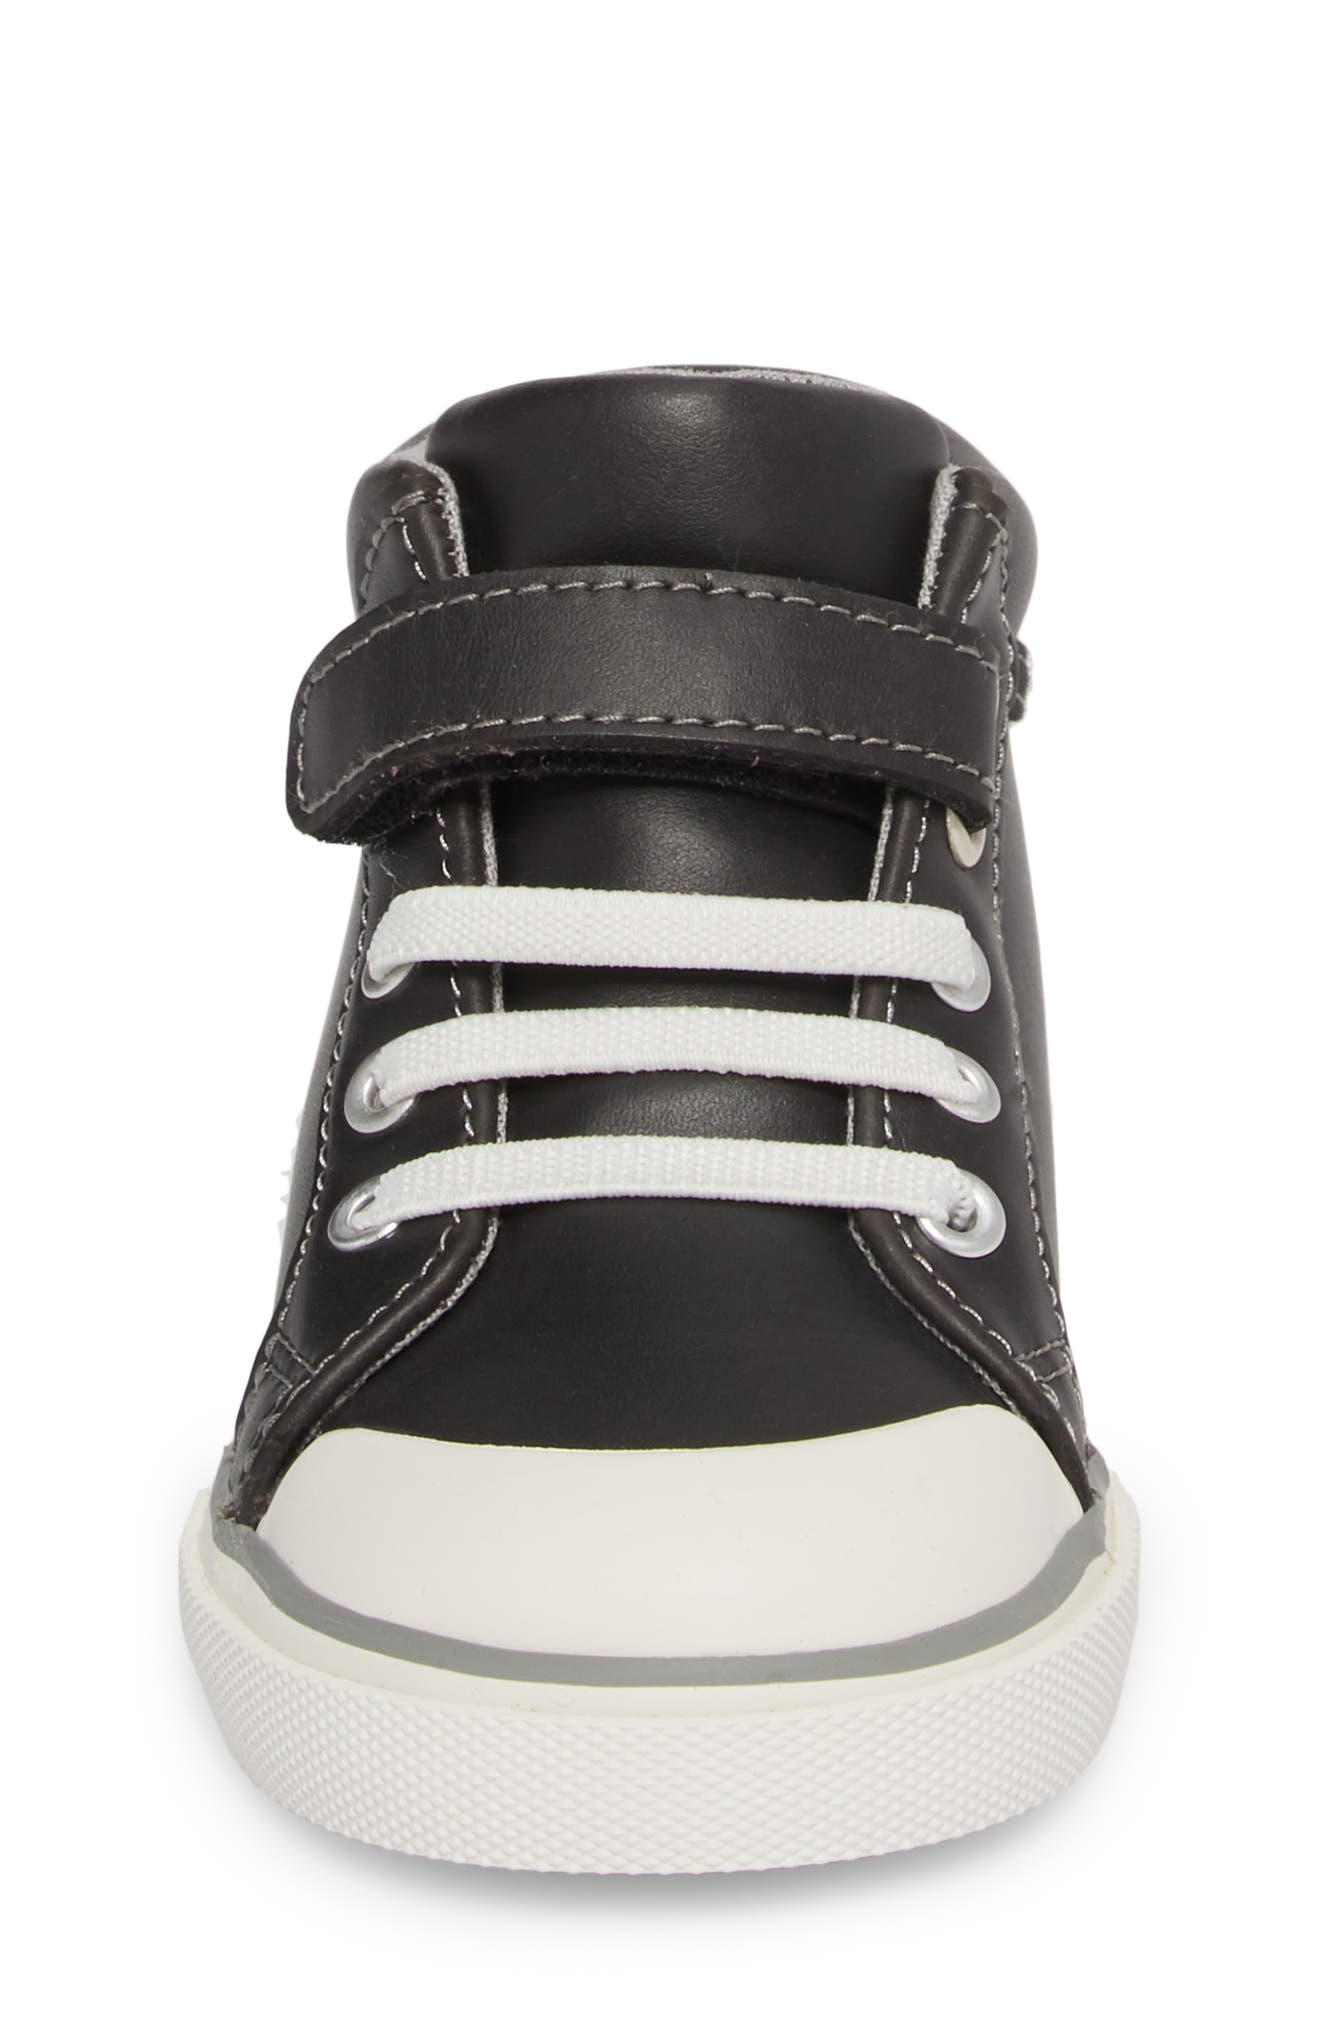 'Peyton' High Top Sneaker,                             Alternate thumbnail 4, color,                             Black Leather